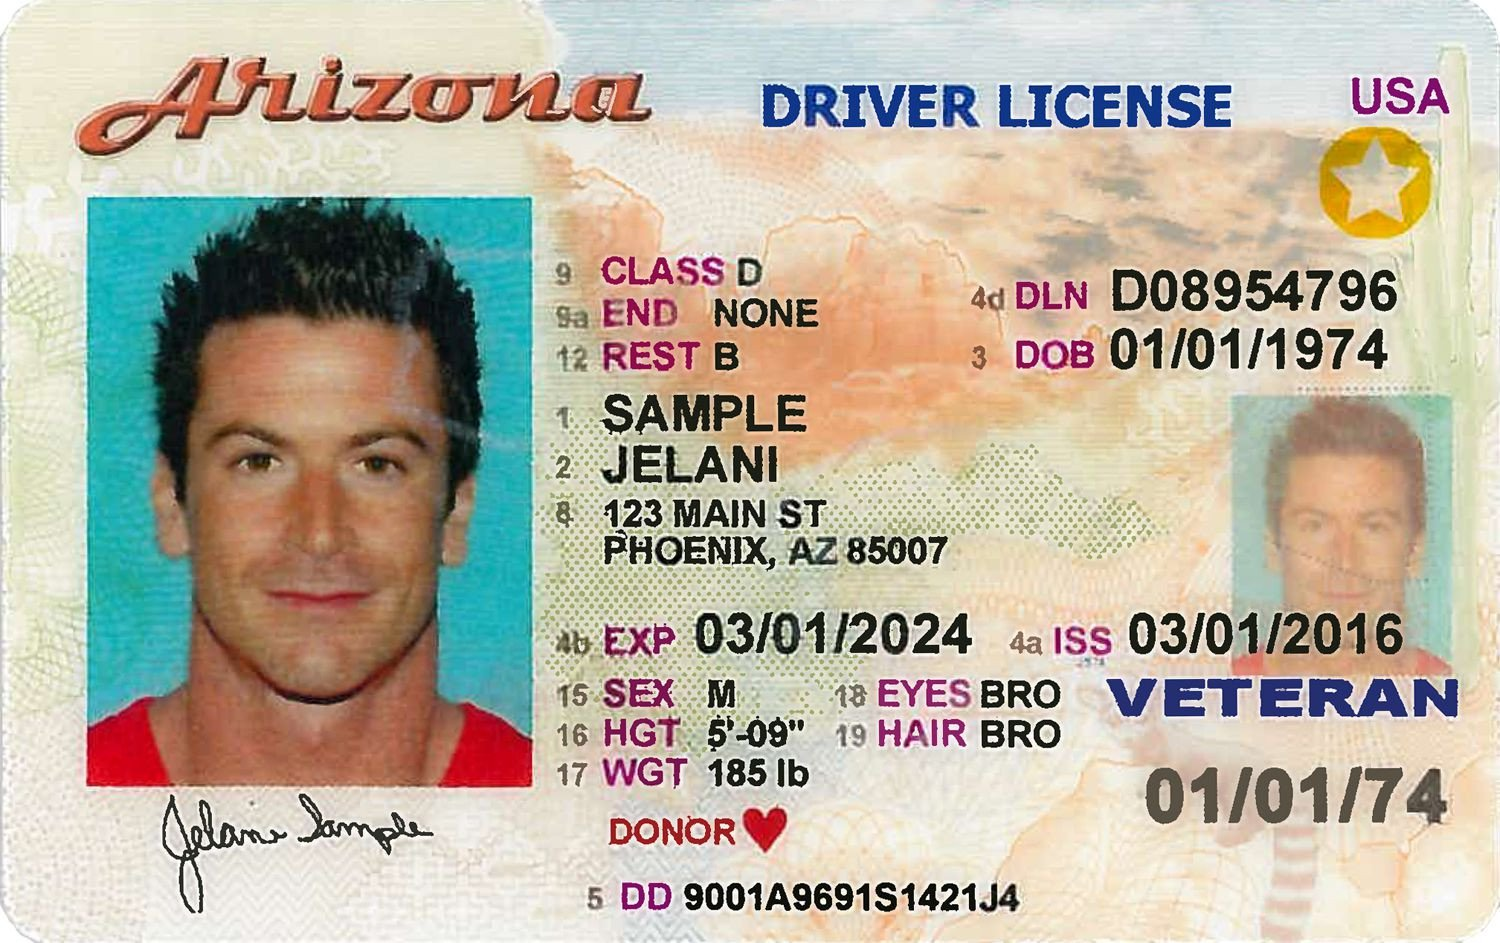 Arizona Id Template How to Renew An Arizona Driver License